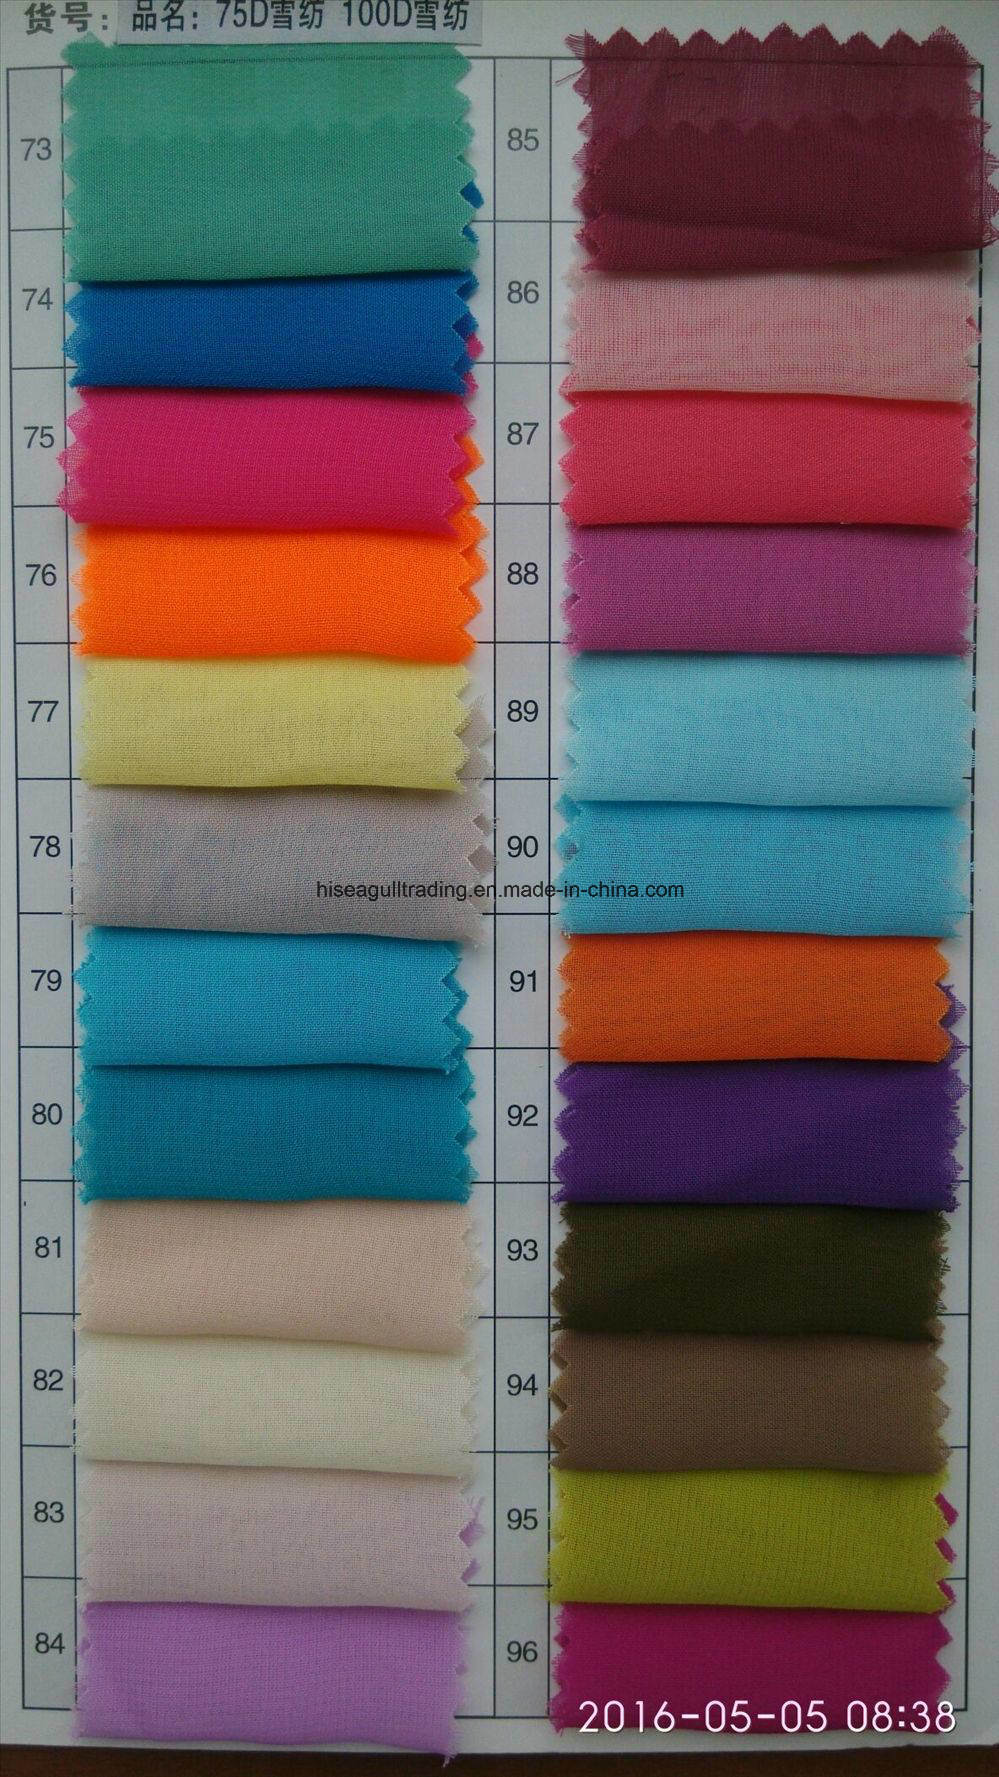 100d*100d Polyester Chiffon Fabric for Skirt, Scarves etc